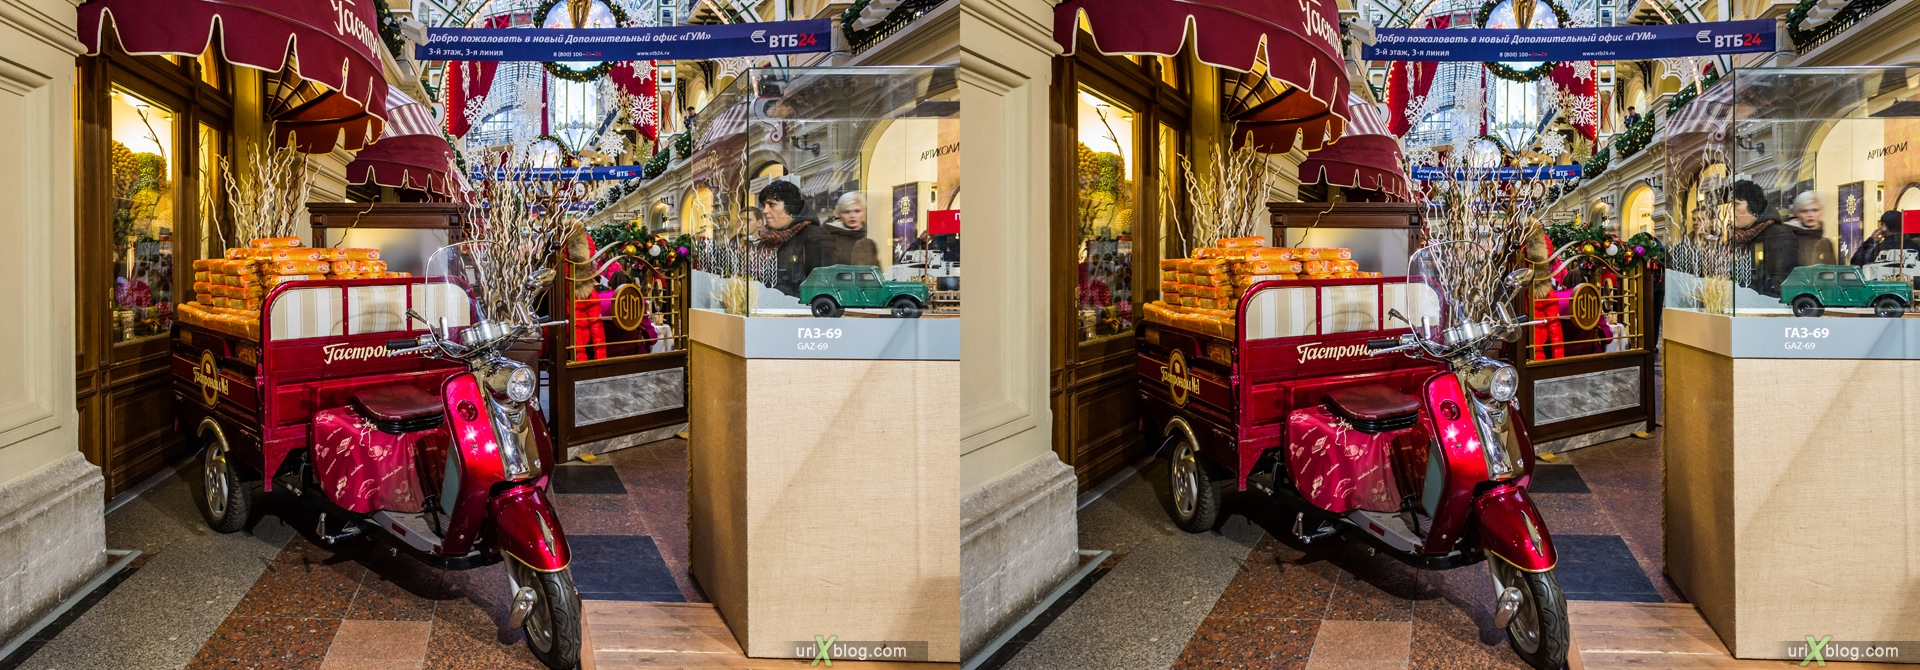 2013, Moscow, Russia, scooter, GUM, old, automobile, vehicle, exhibition, shop, mall, 3D, stereo pair, cross-eyed, crossview, cross view stereo pair, stereoscopic